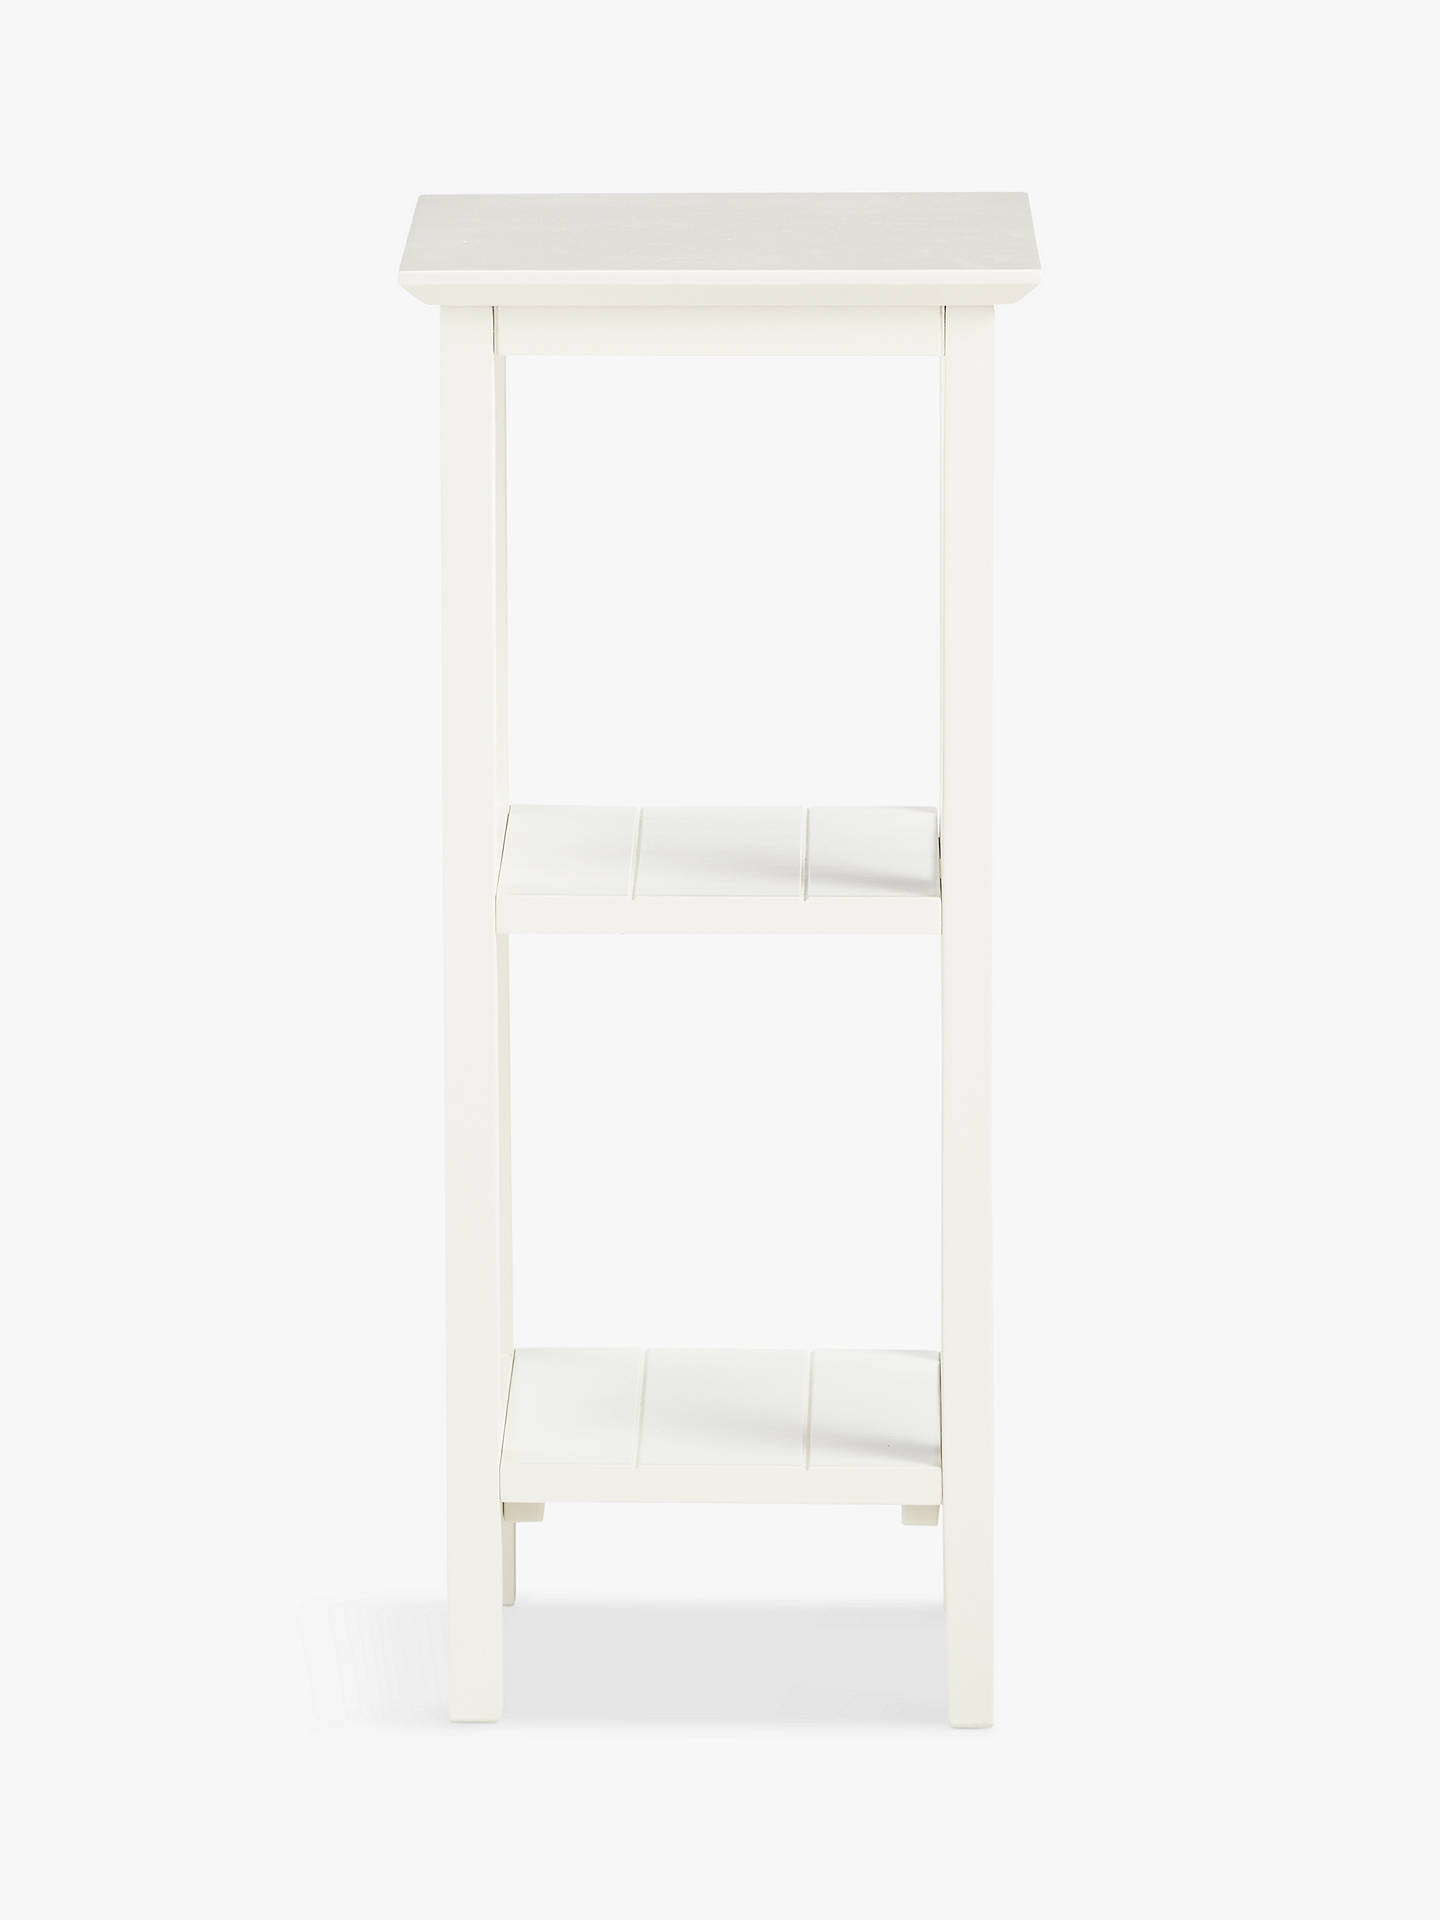 BuyJohn Lewis & Partners St Ives 3 Tier Shelf Unit Online at johnlewis.com